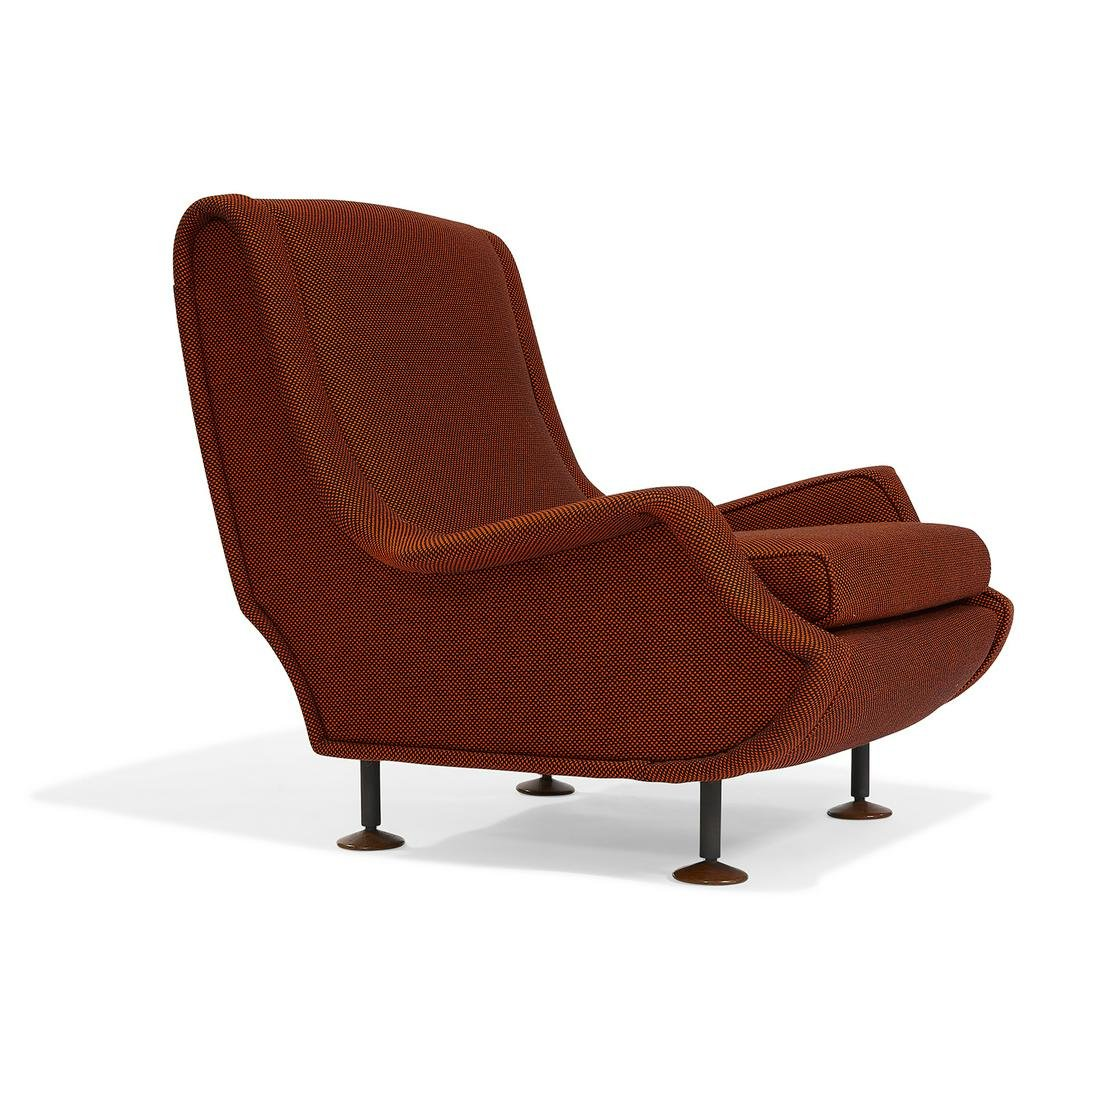 Marco Zanuso for Arflex Regent lounge chair